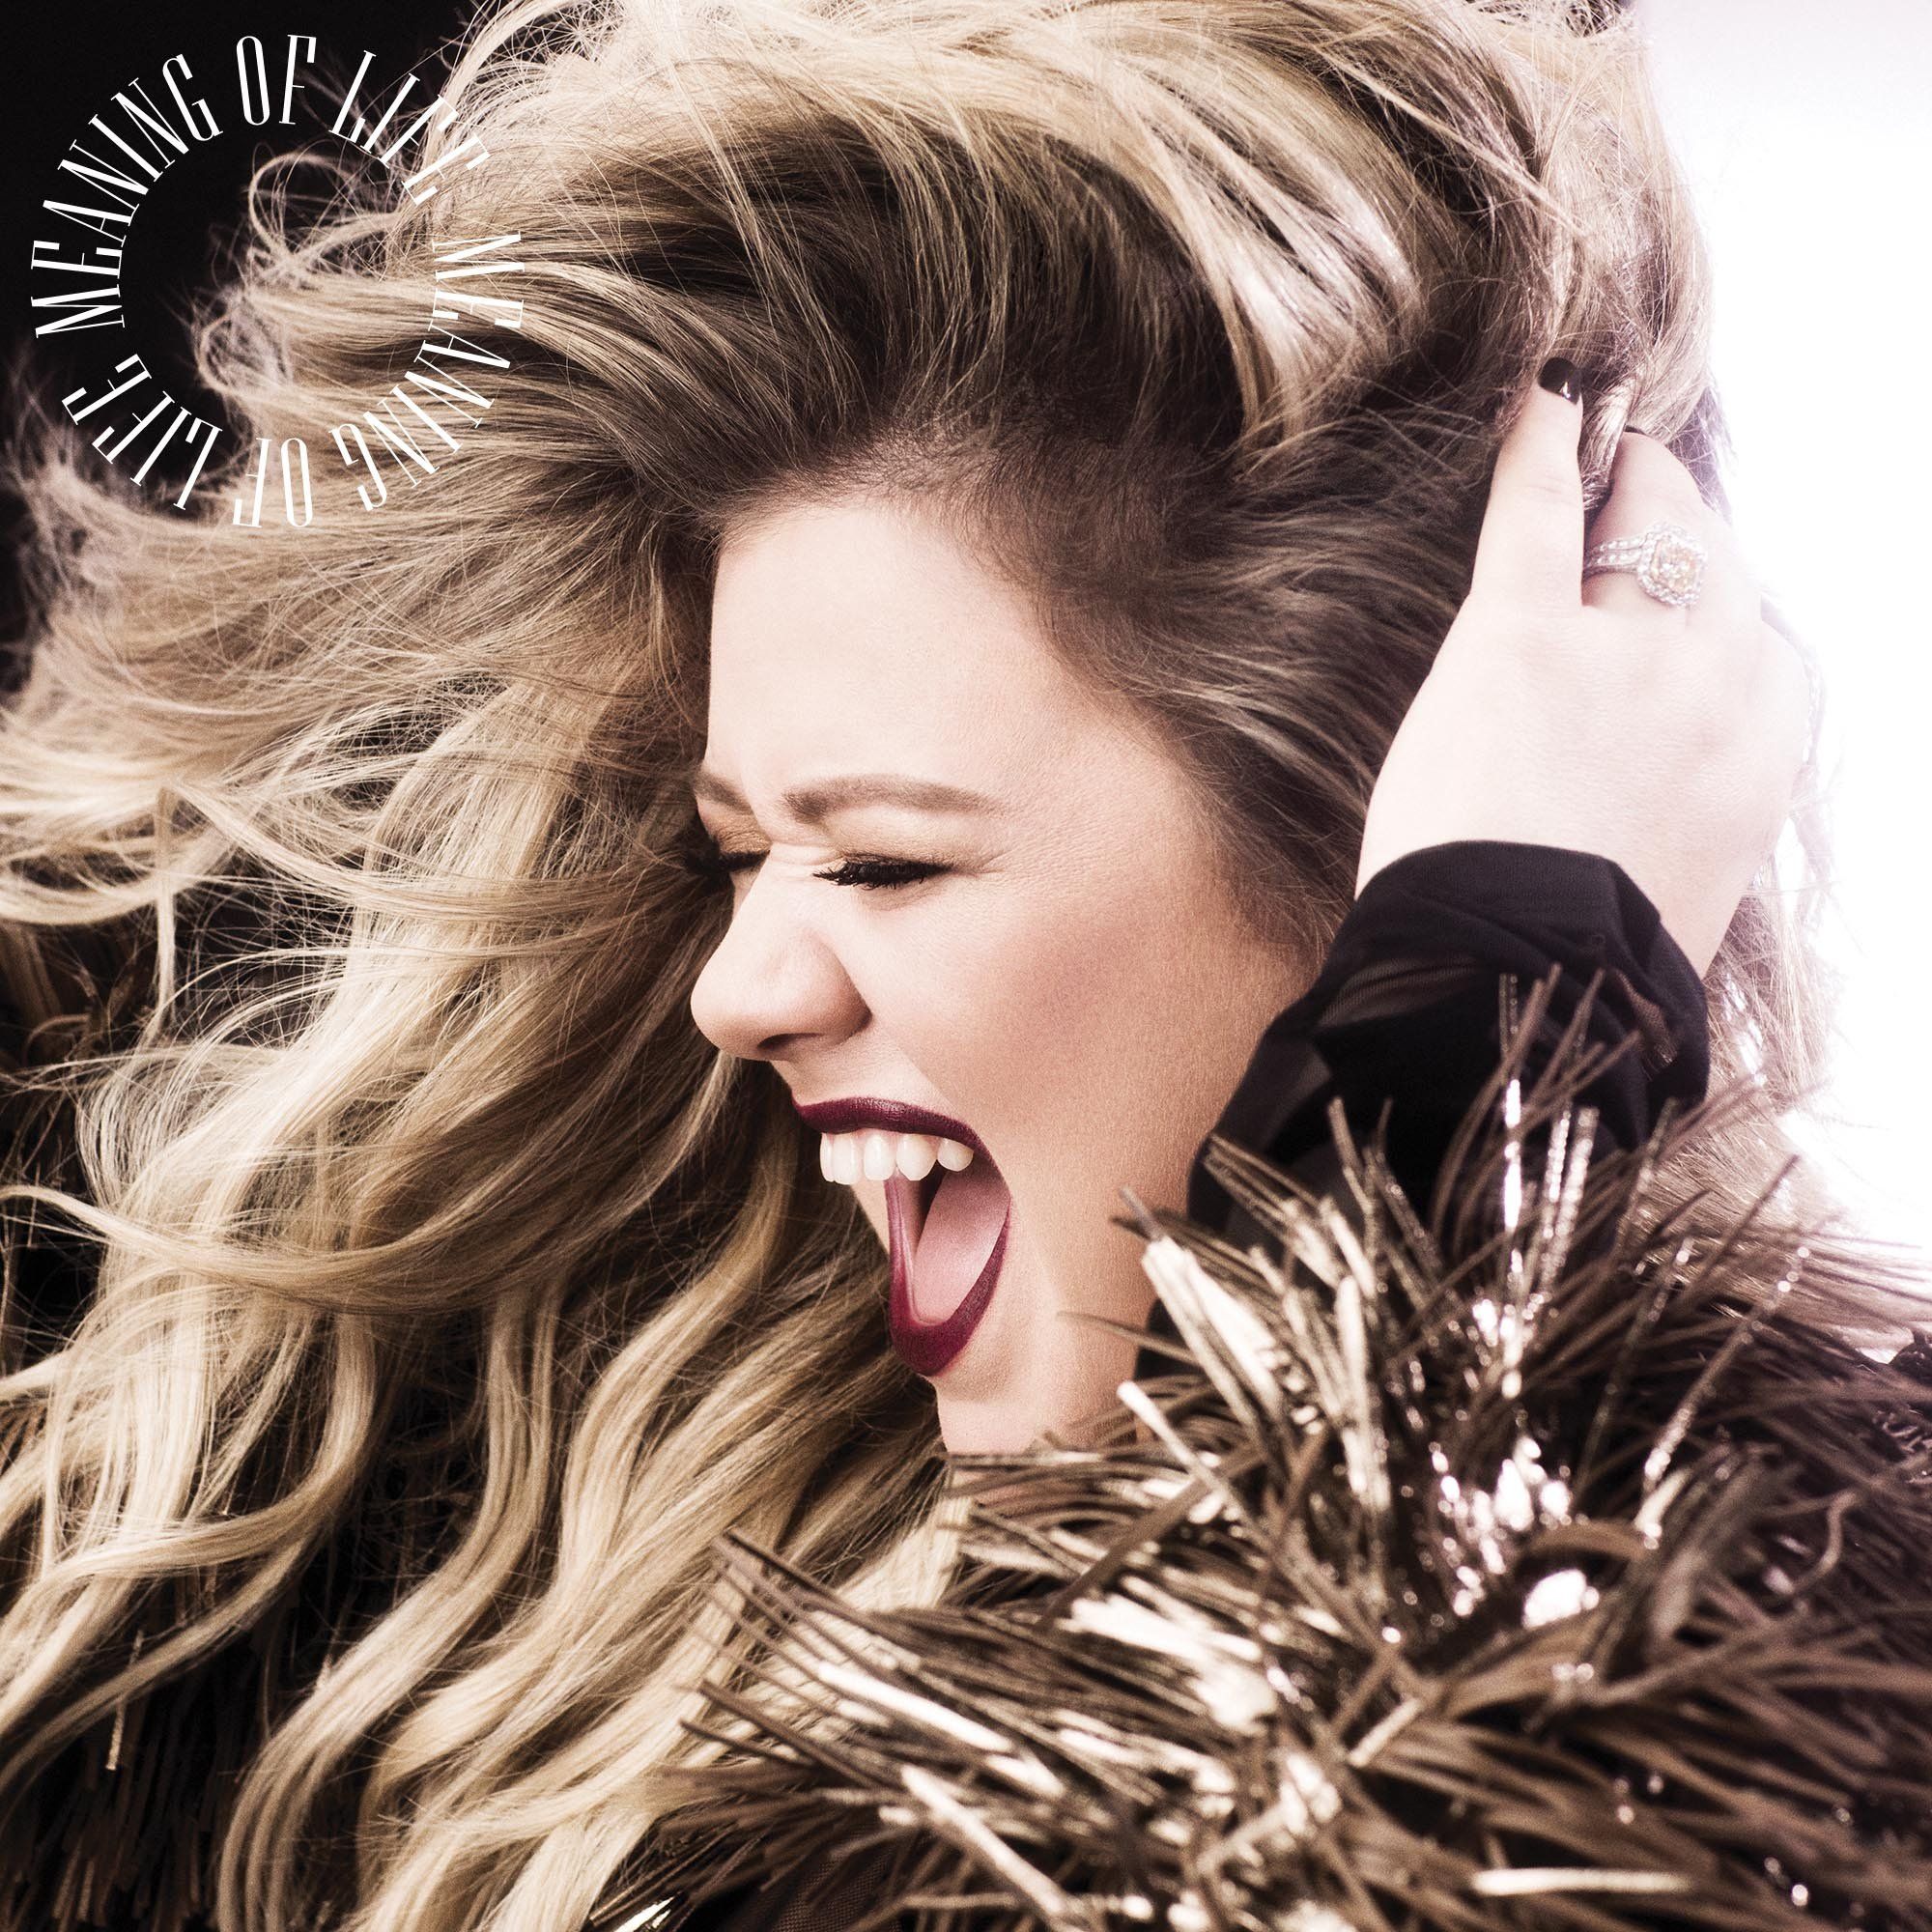 Kelly Clarkson - Meaning Of Life (Digital Download Card)